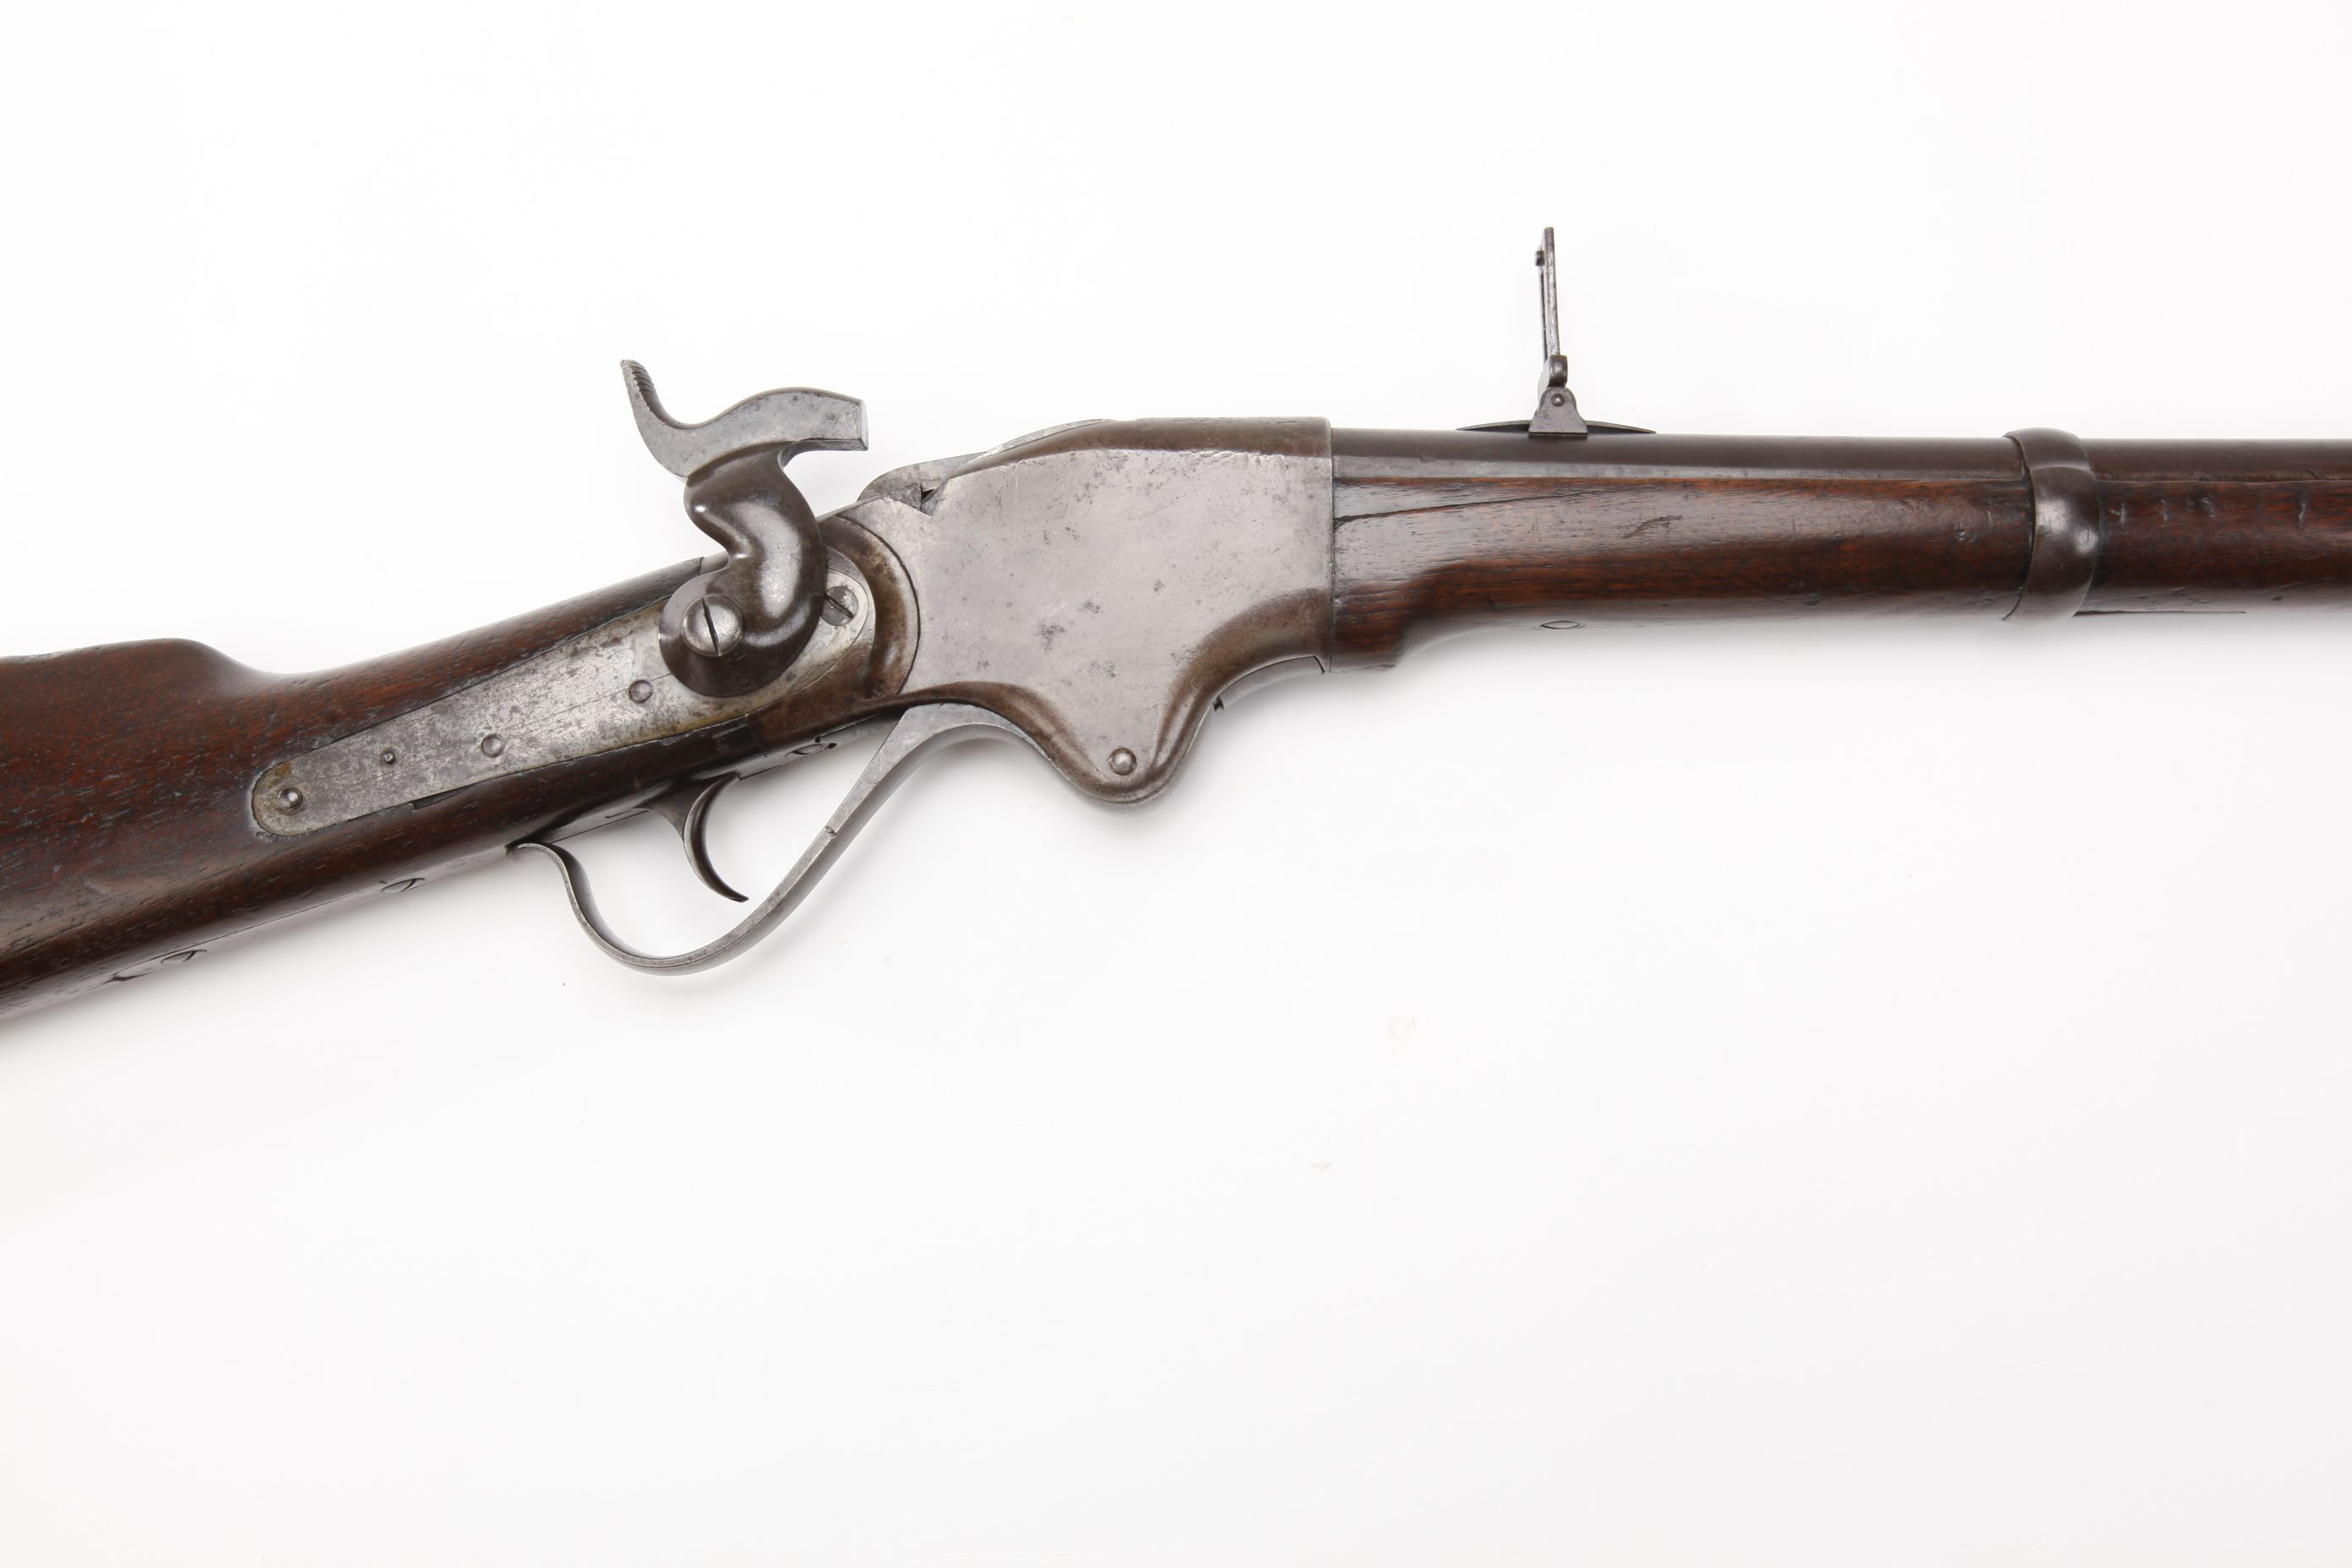 Spencer Model 1860 Repeating Rifle